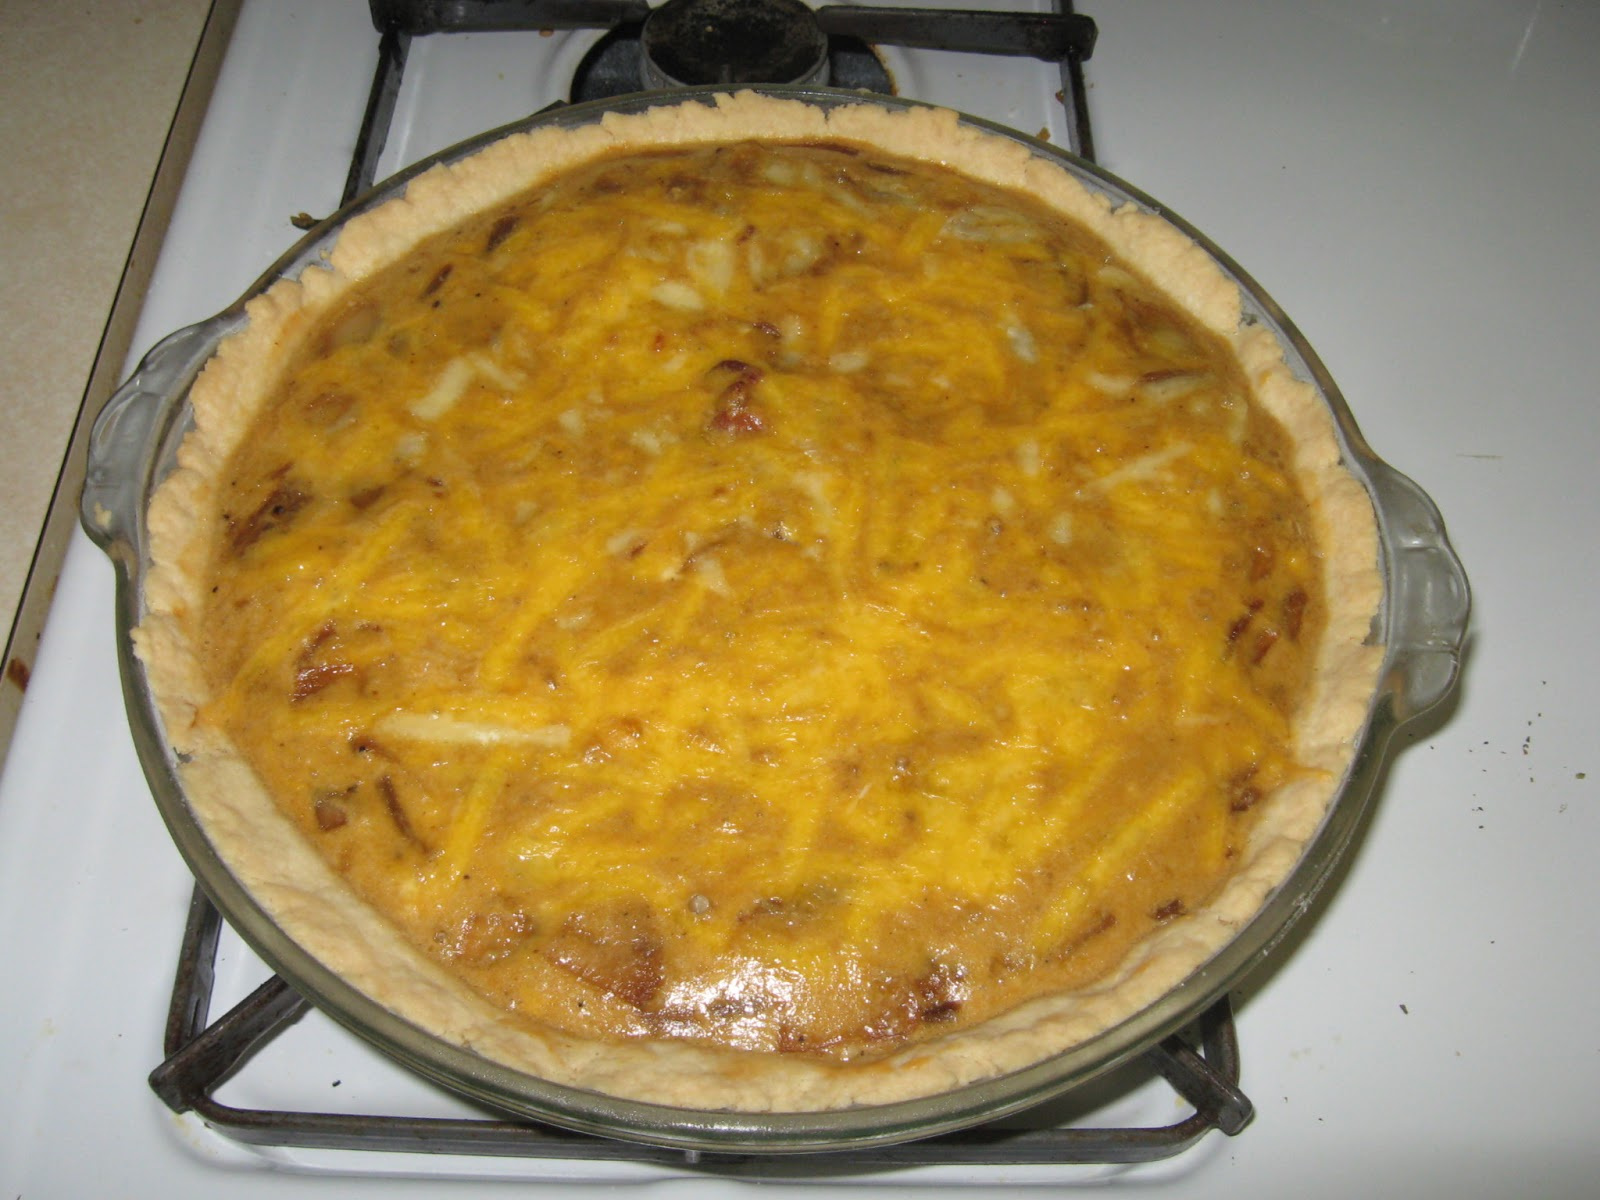 Courtney's Recipes: Guinness Braised Onion Quiche